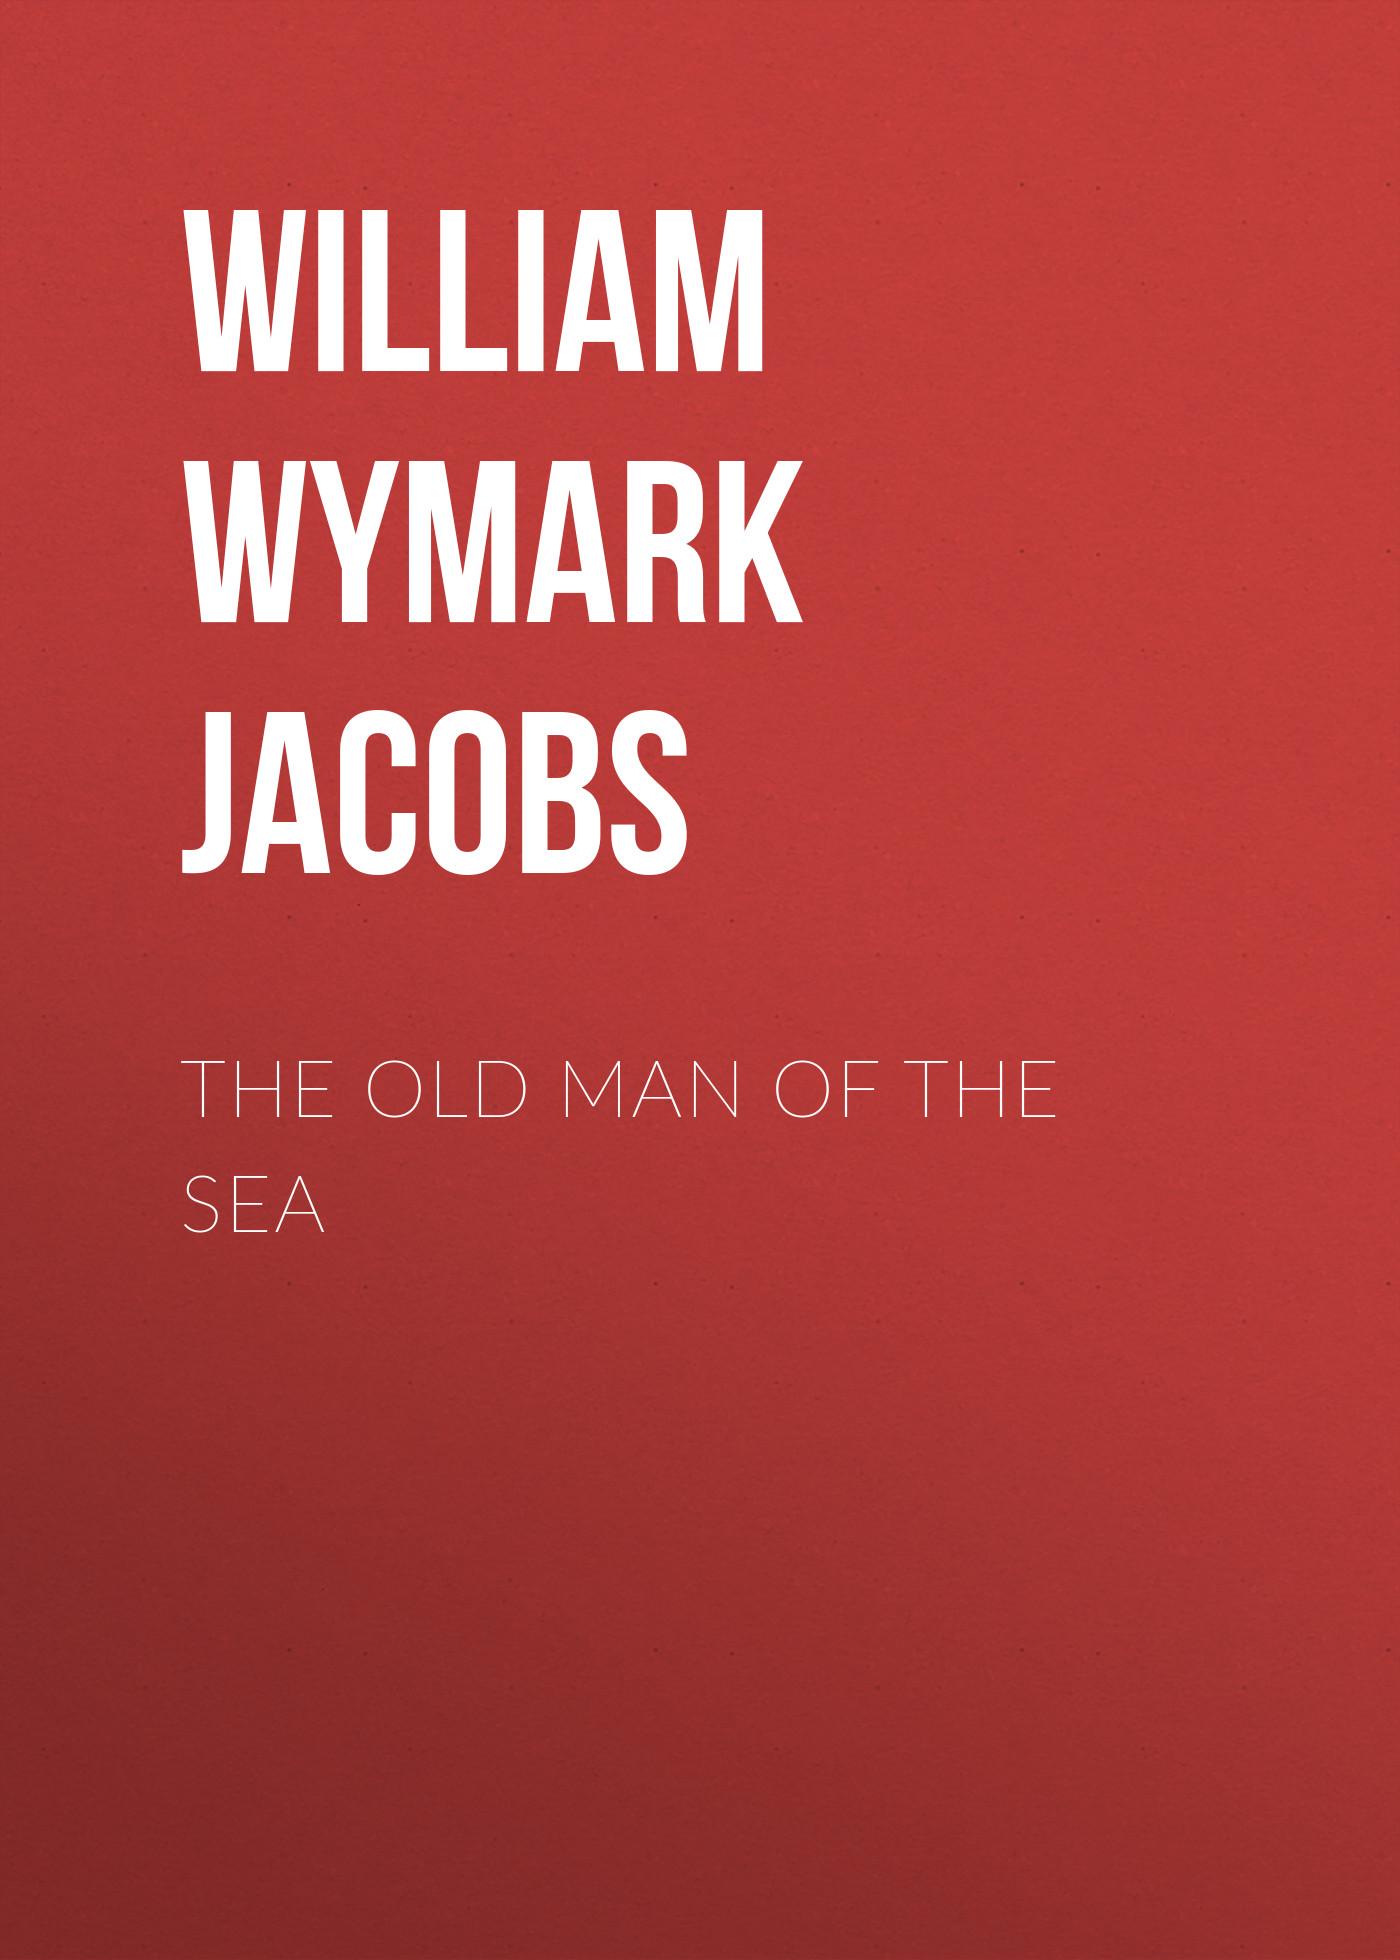 William Wymark Jacobs The Old Man of the Sea william congreve the old batchelor